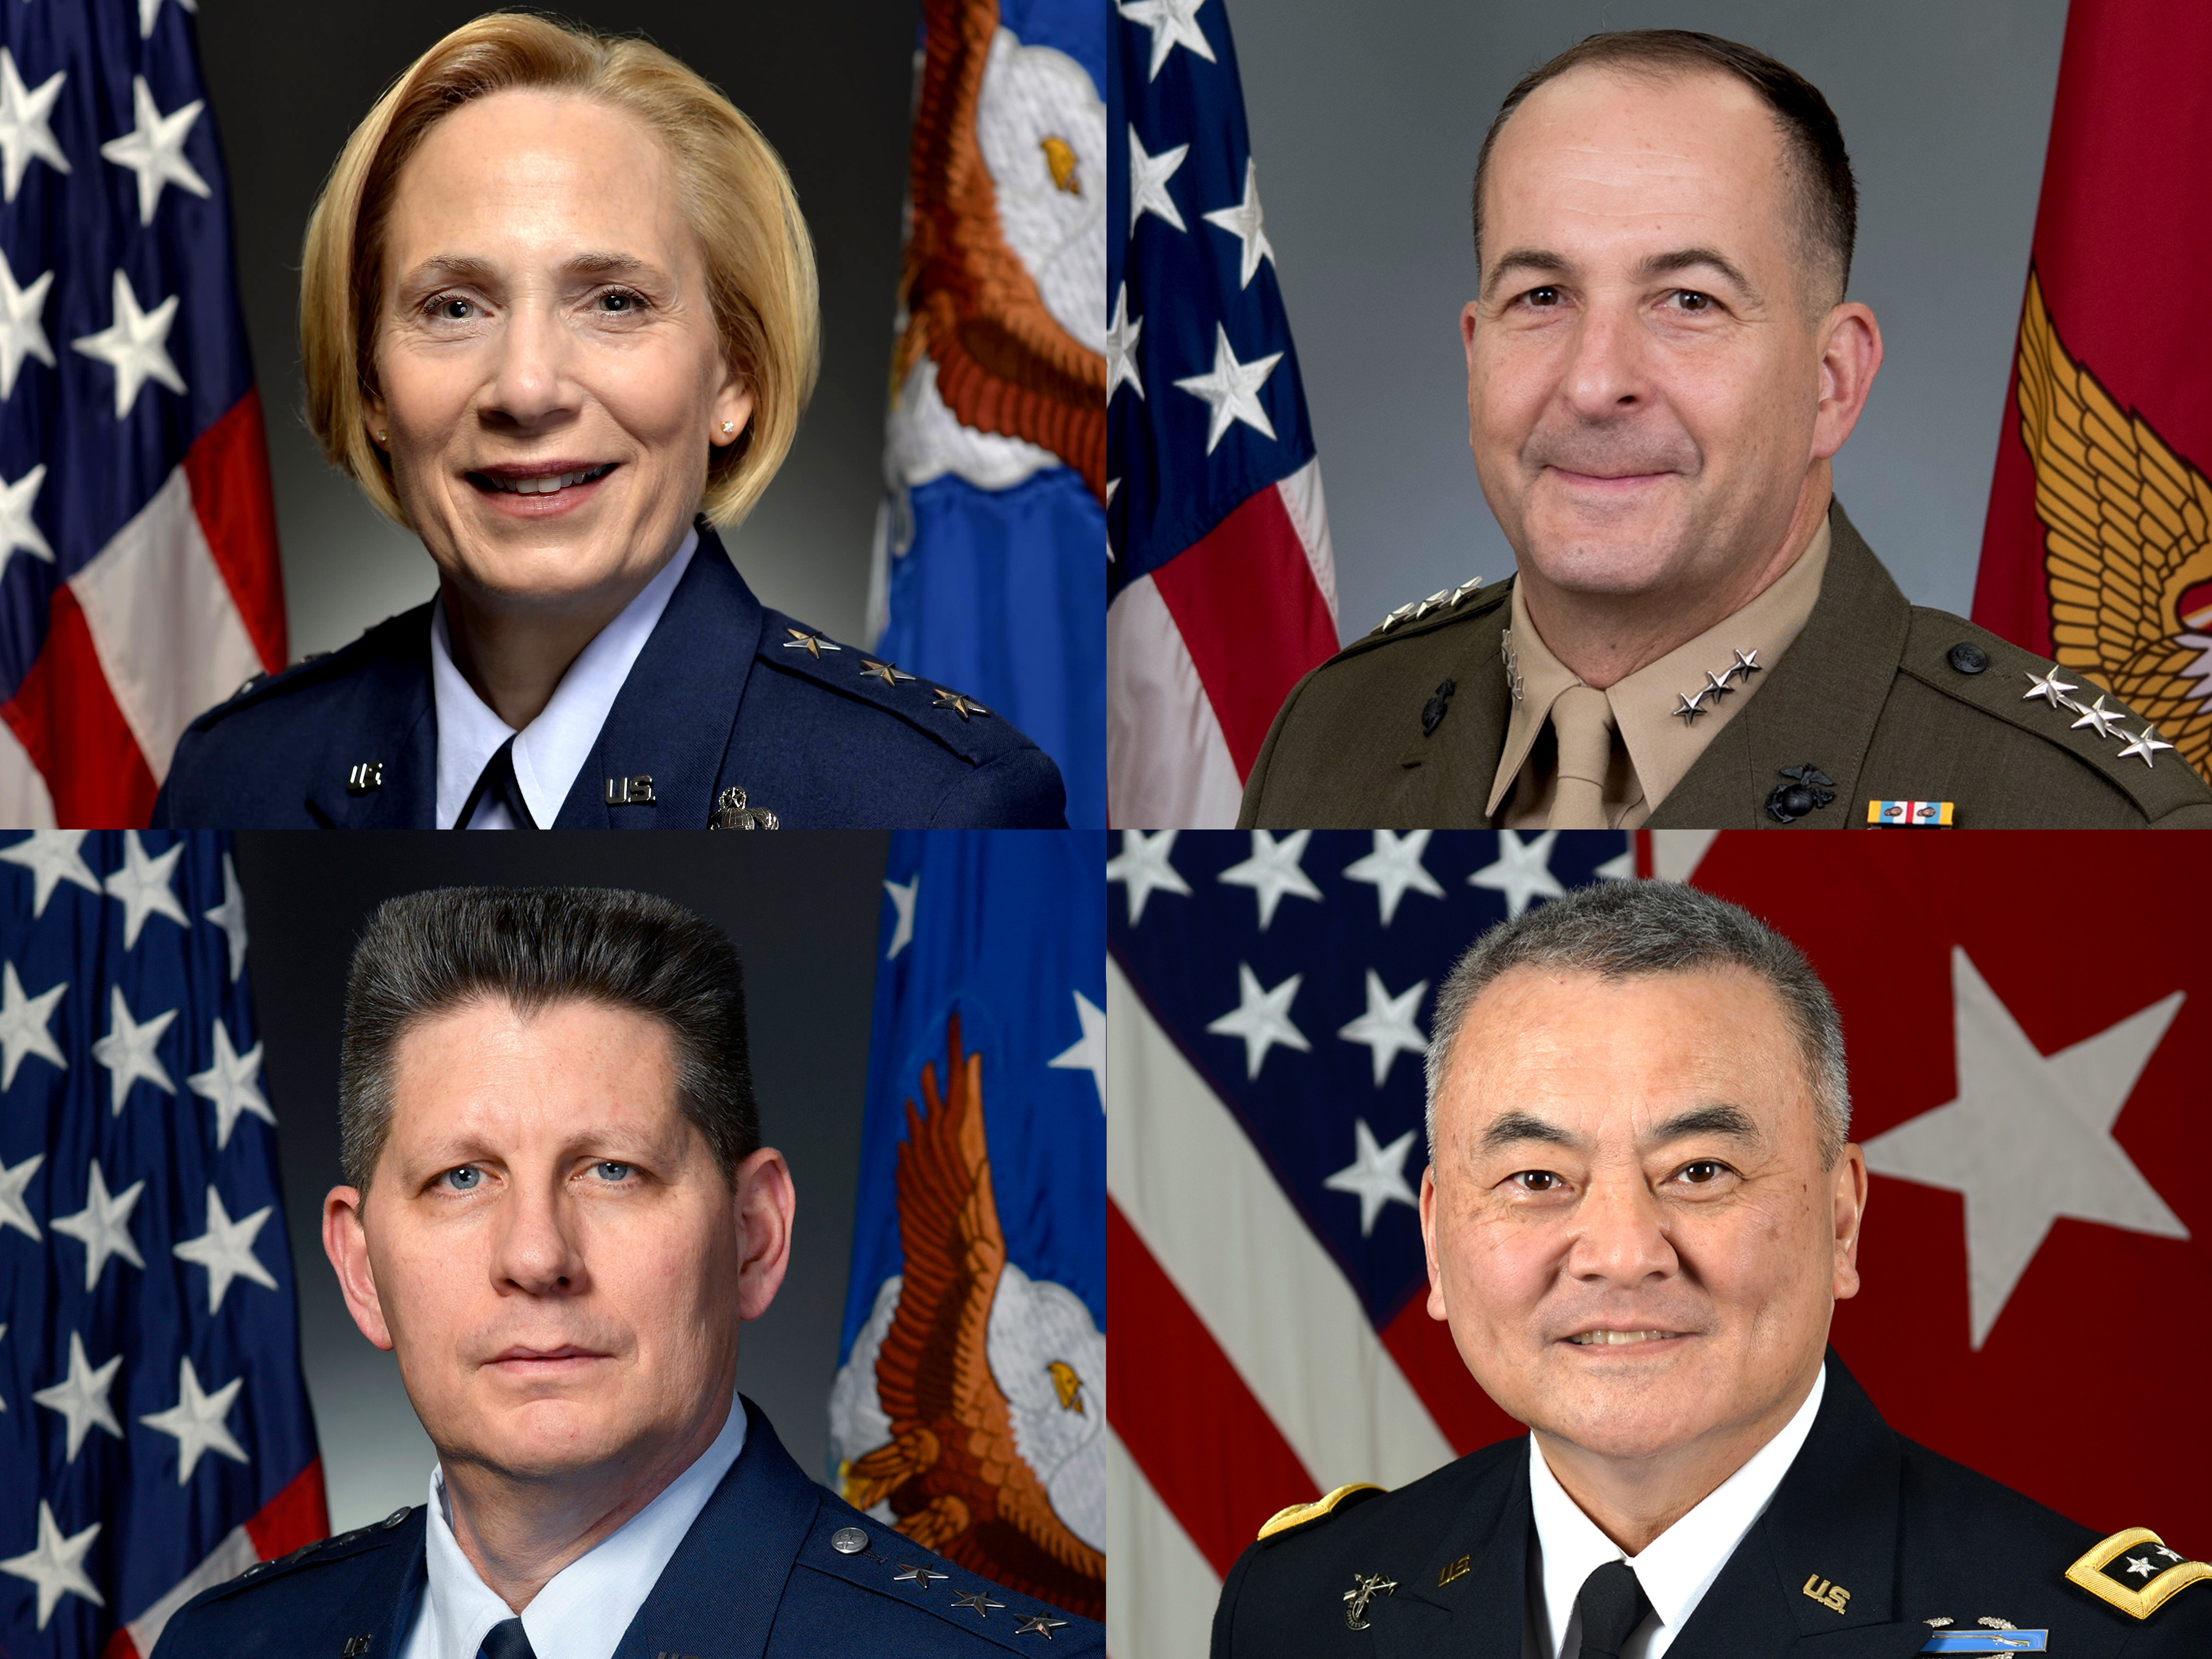 Military Officials Aren't Supposed To Associate With Hate Groups. So Why Are These Generals Speaking At Frank Gaffney's Confab?